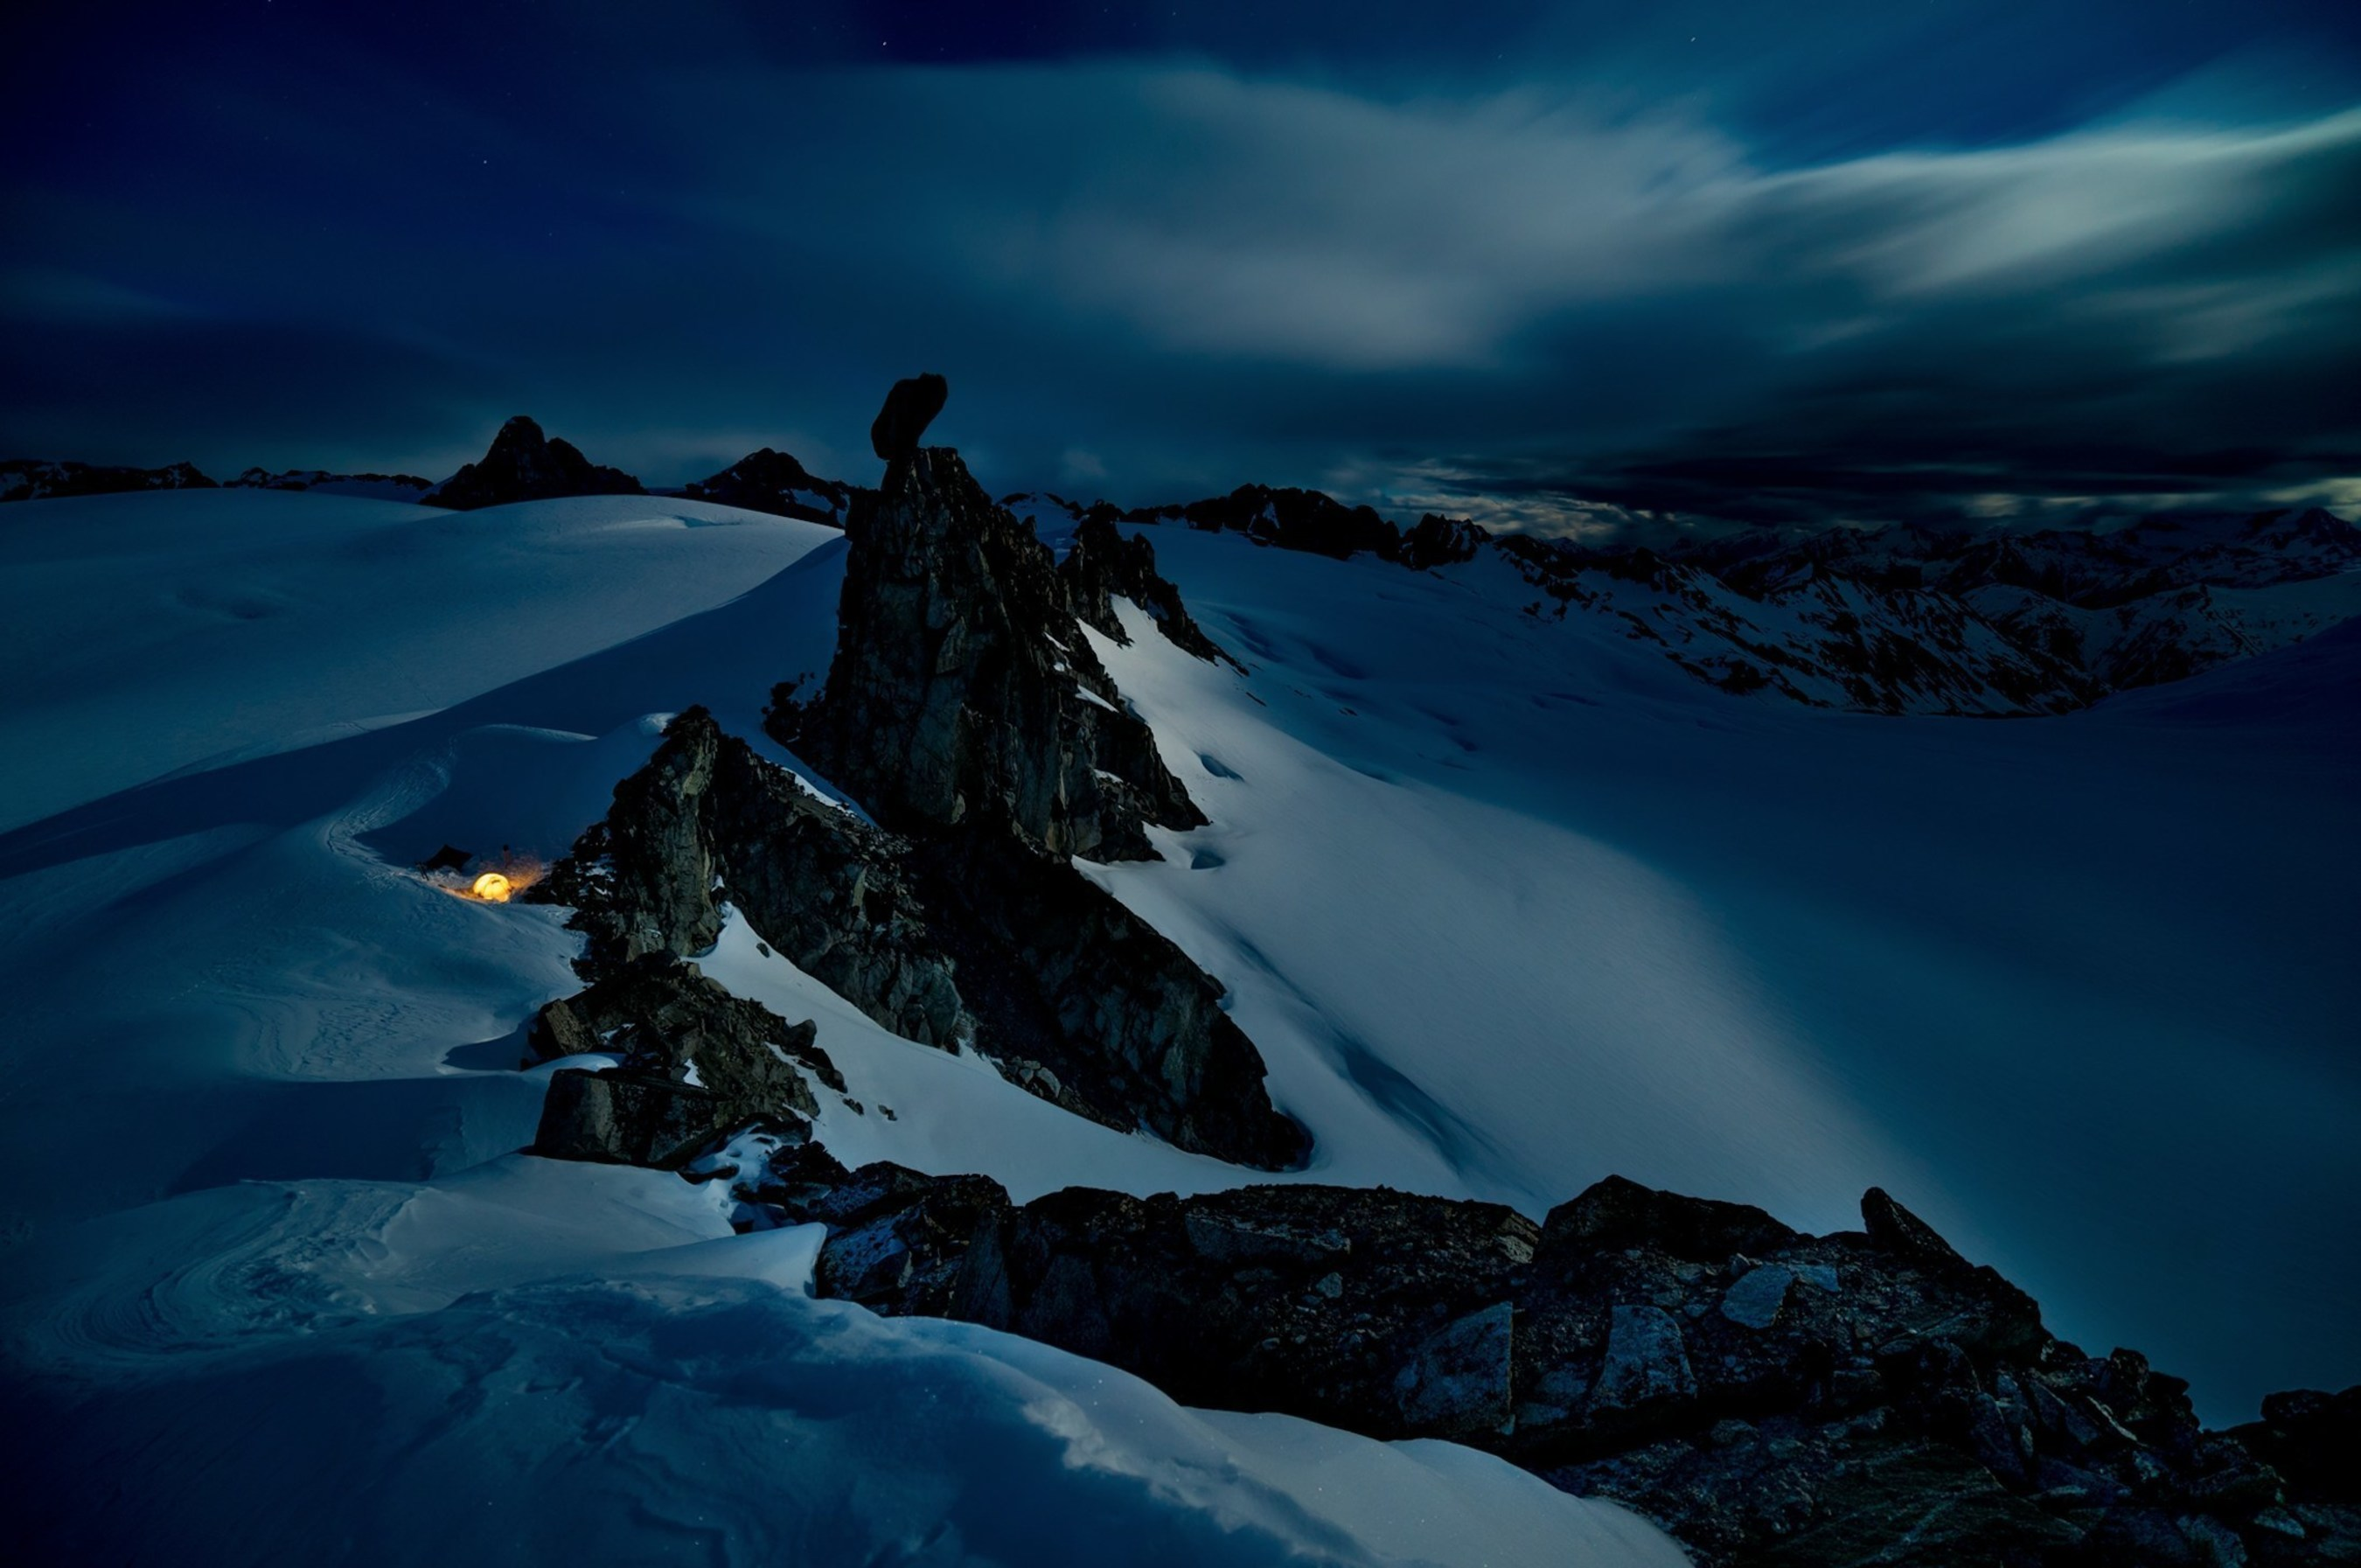 One of many windy, moonlit campsites on British Columbia's Homathko Icefield for the crew of A Skier's Journey (as seen in Crossing Home: A Skier's Journey).